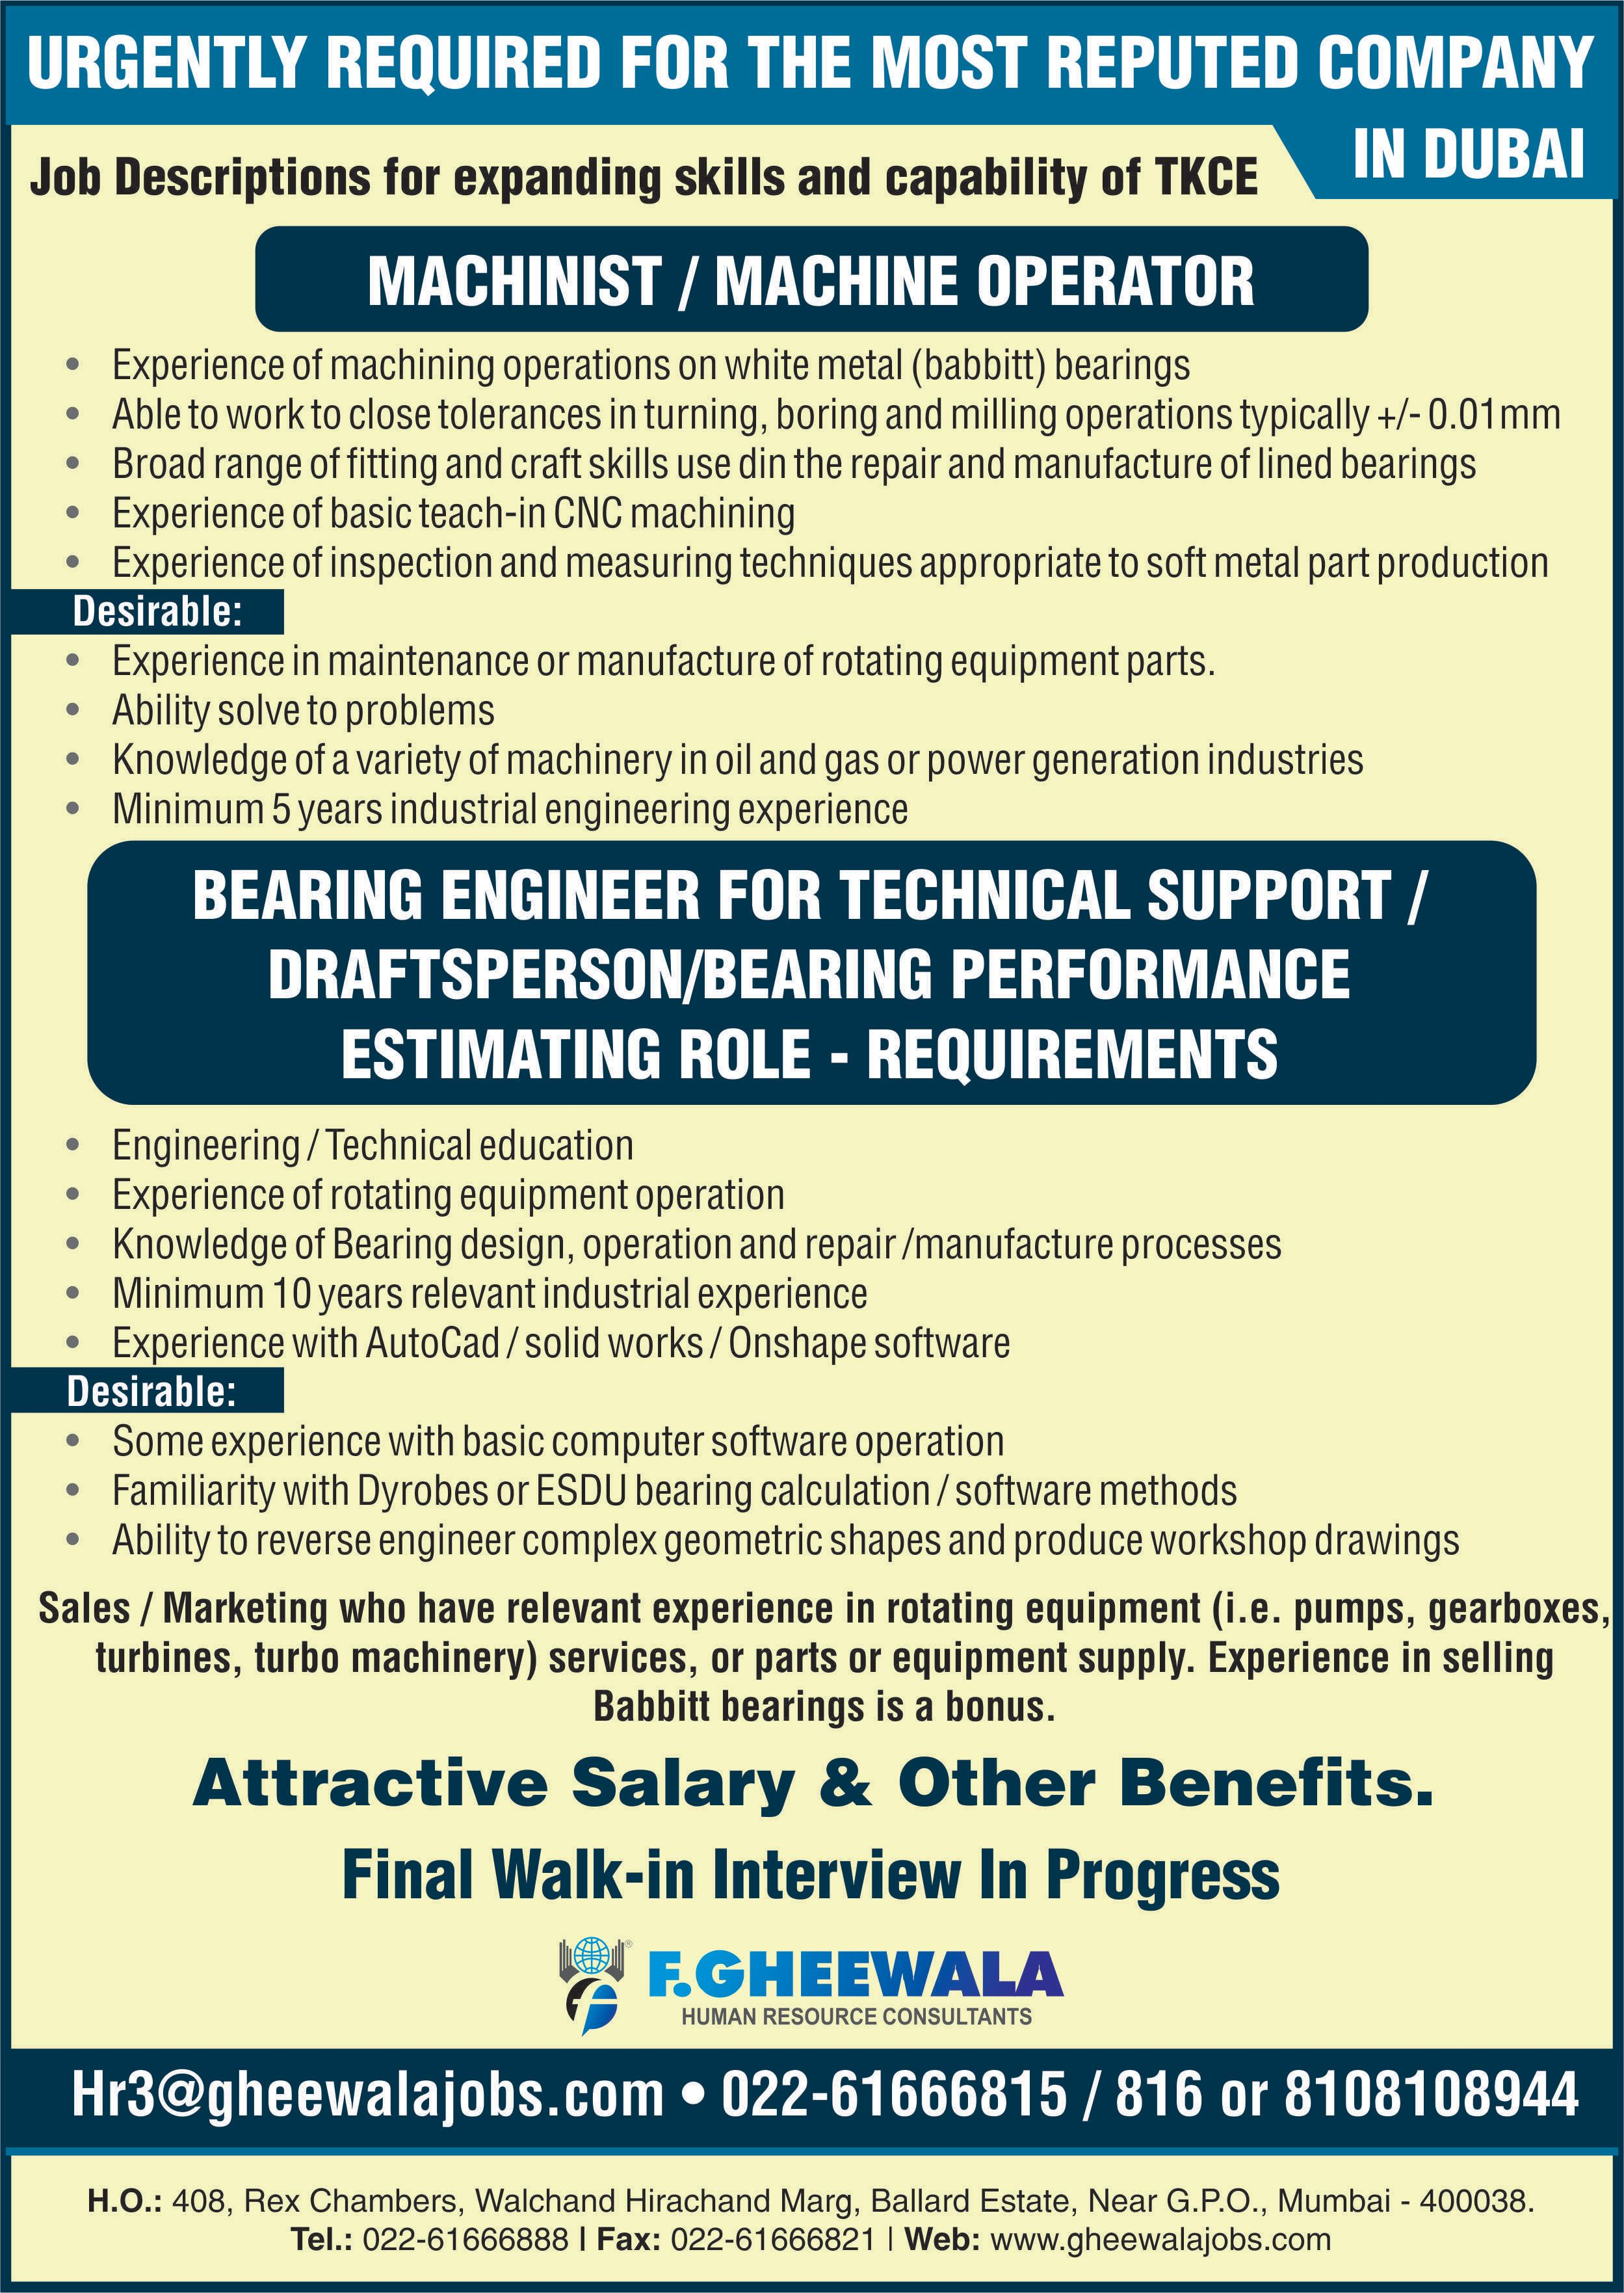 Urgently Required For The Most Reputed Company In Dubai Please